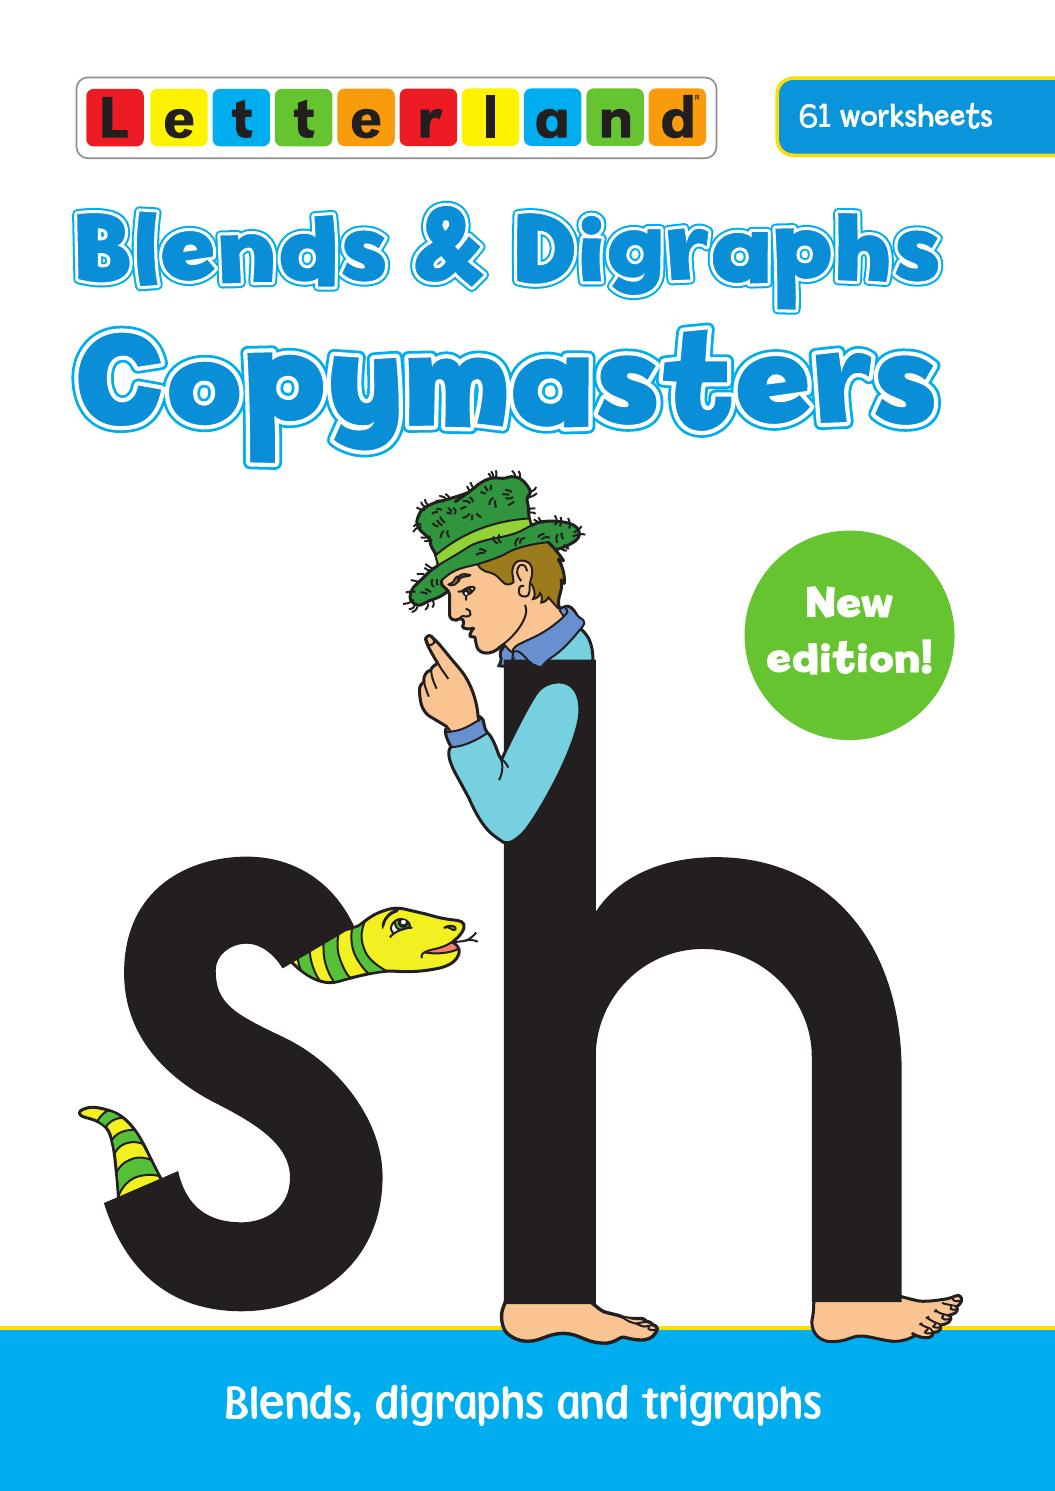 hight resolution of Blends and Digraphs Copymasters by Letterland - issuu